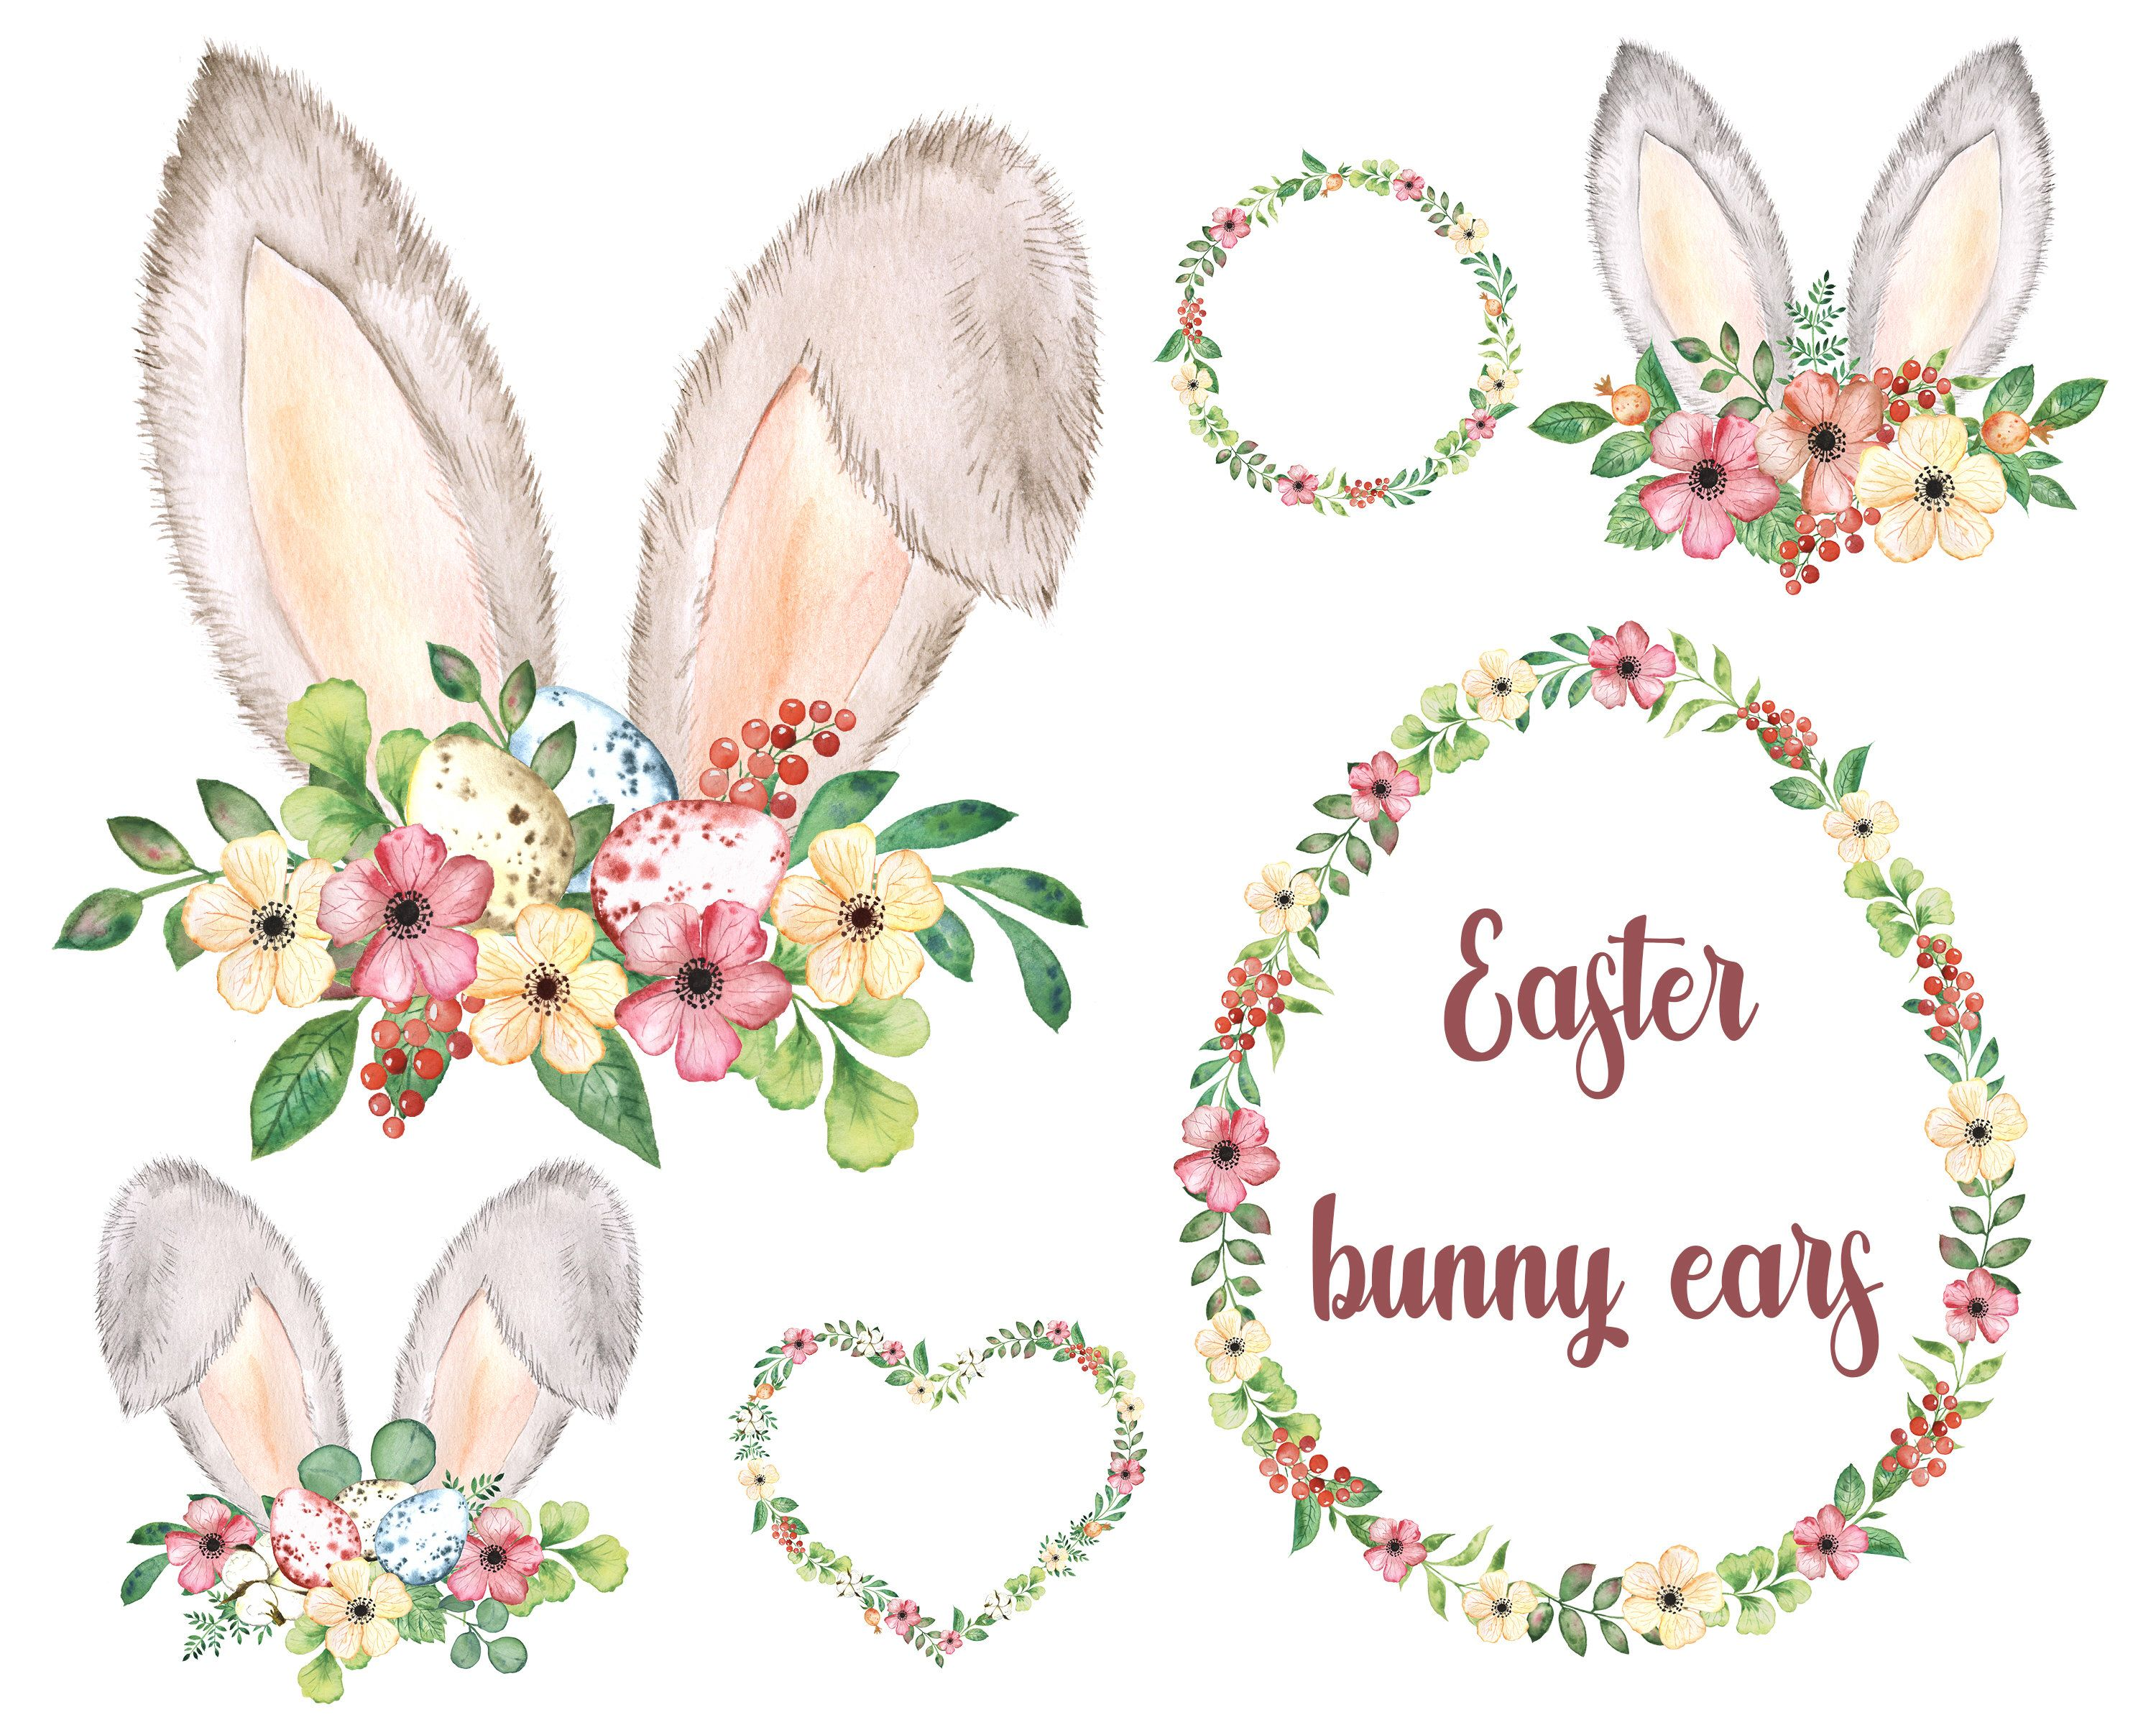 Watercolor Easter Bunny Ears Clipart Easter Eggs Baby Animal Floral Wreaths Happy Easter Easter Holiday Decor Digital Card Making Png Pashalnaya Otkrytka Risunki Milye Risunki